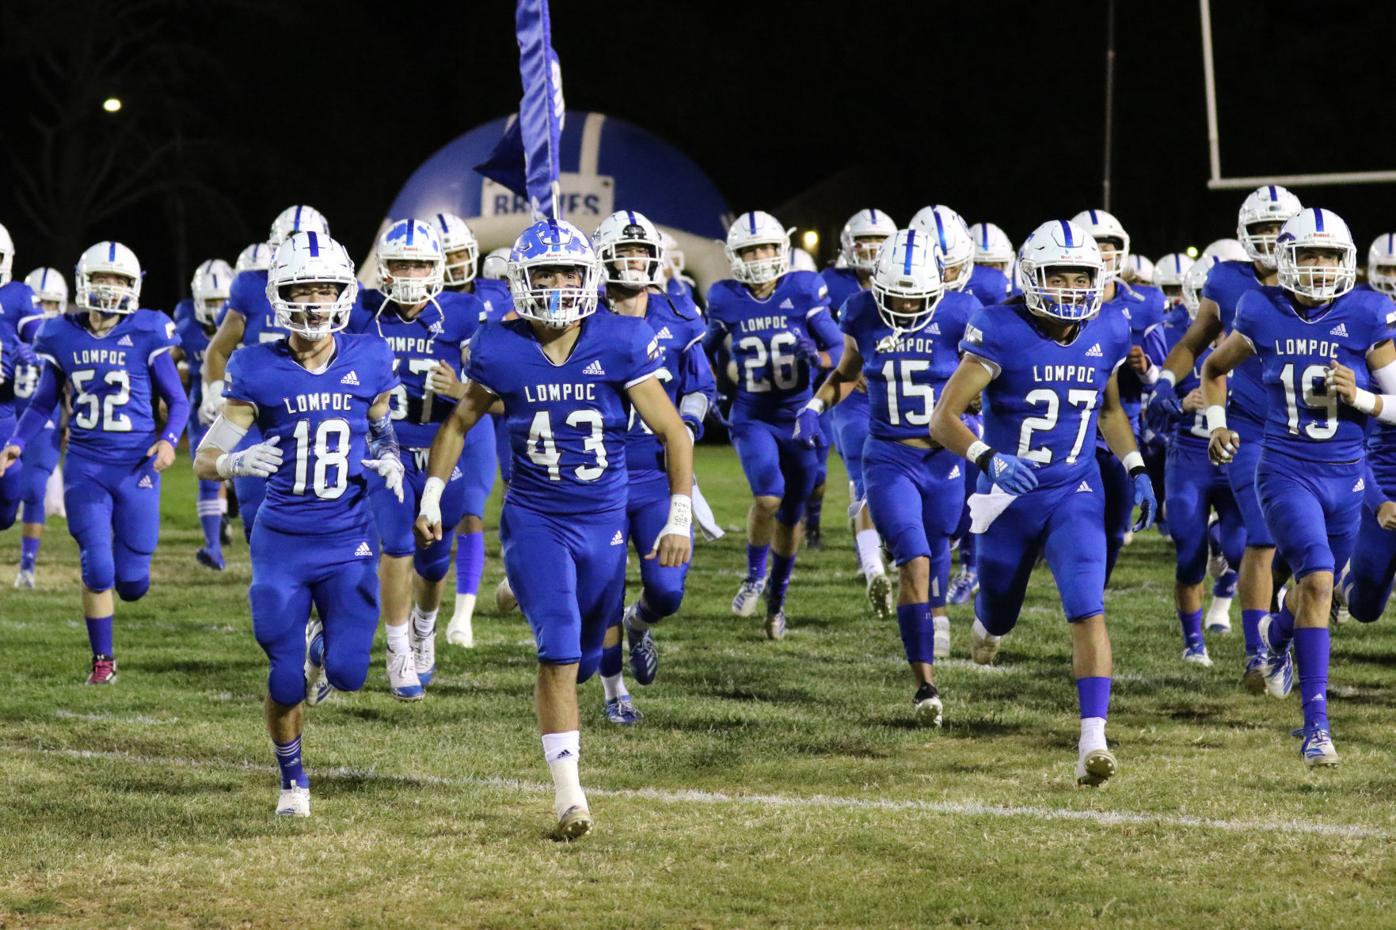 Lompoc and Cabrillo play in Big Game